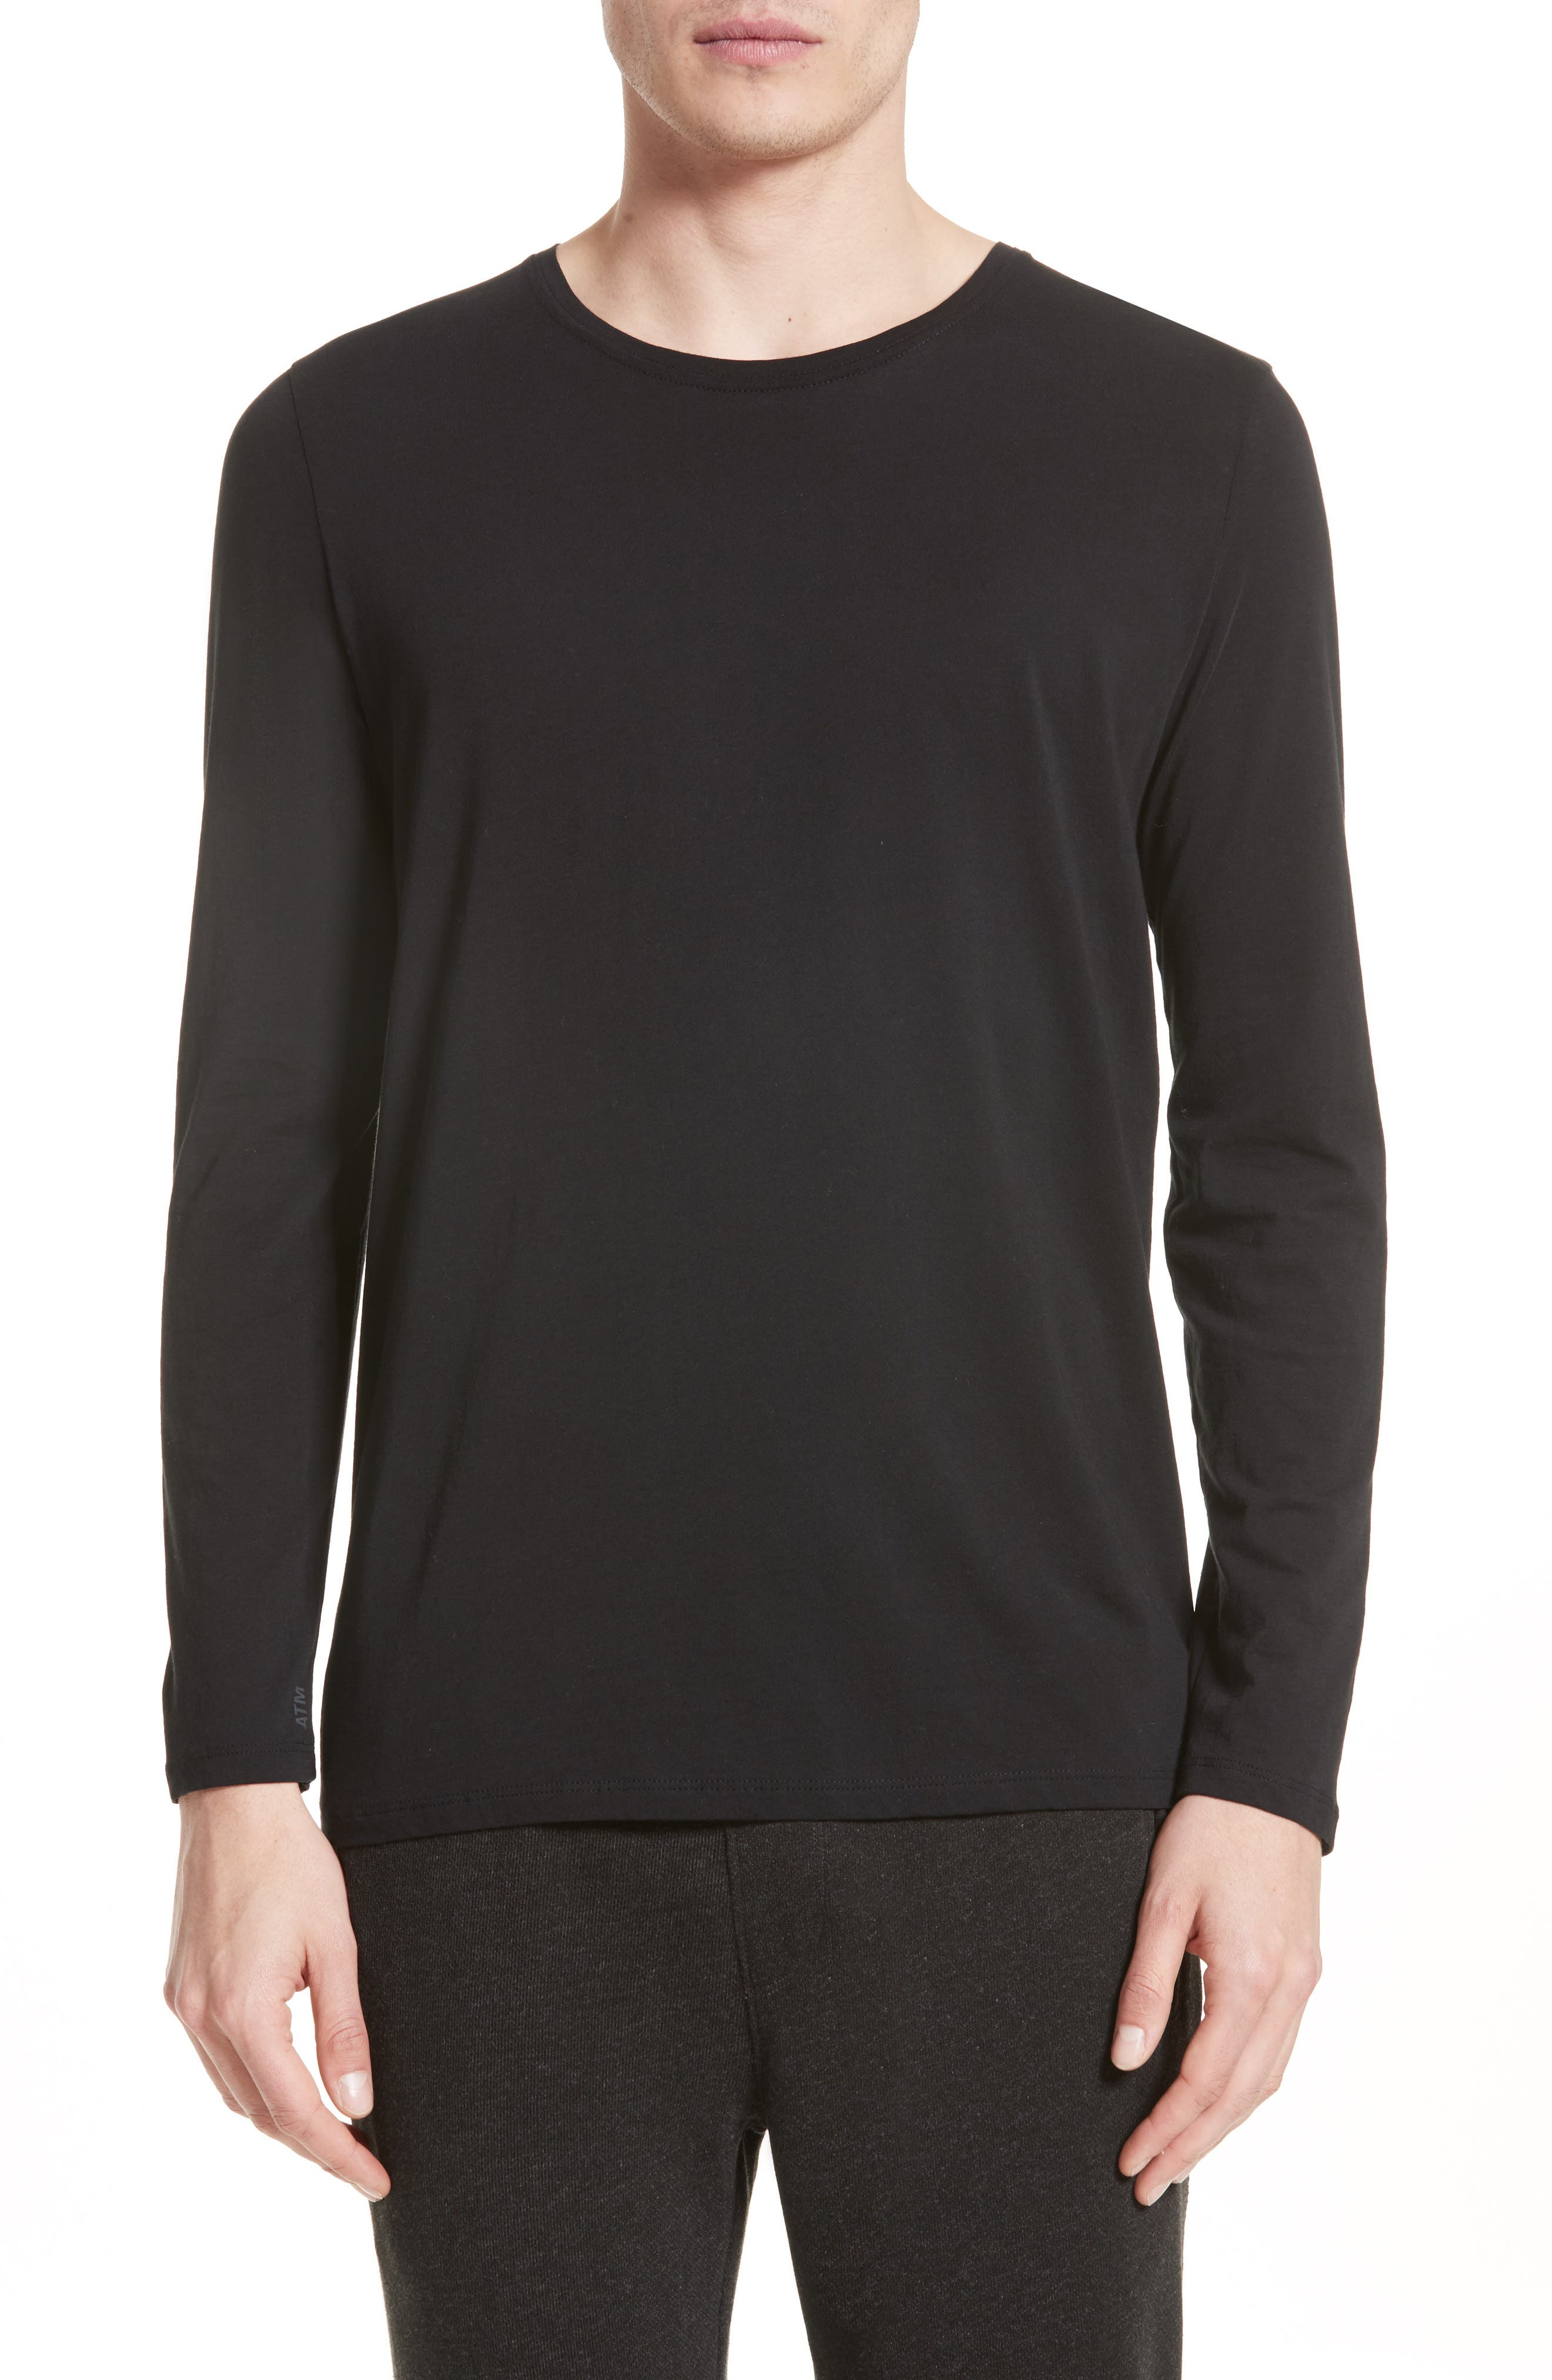 Main Image - ATM Anthony Thomas Melillo Cotton Crewneck